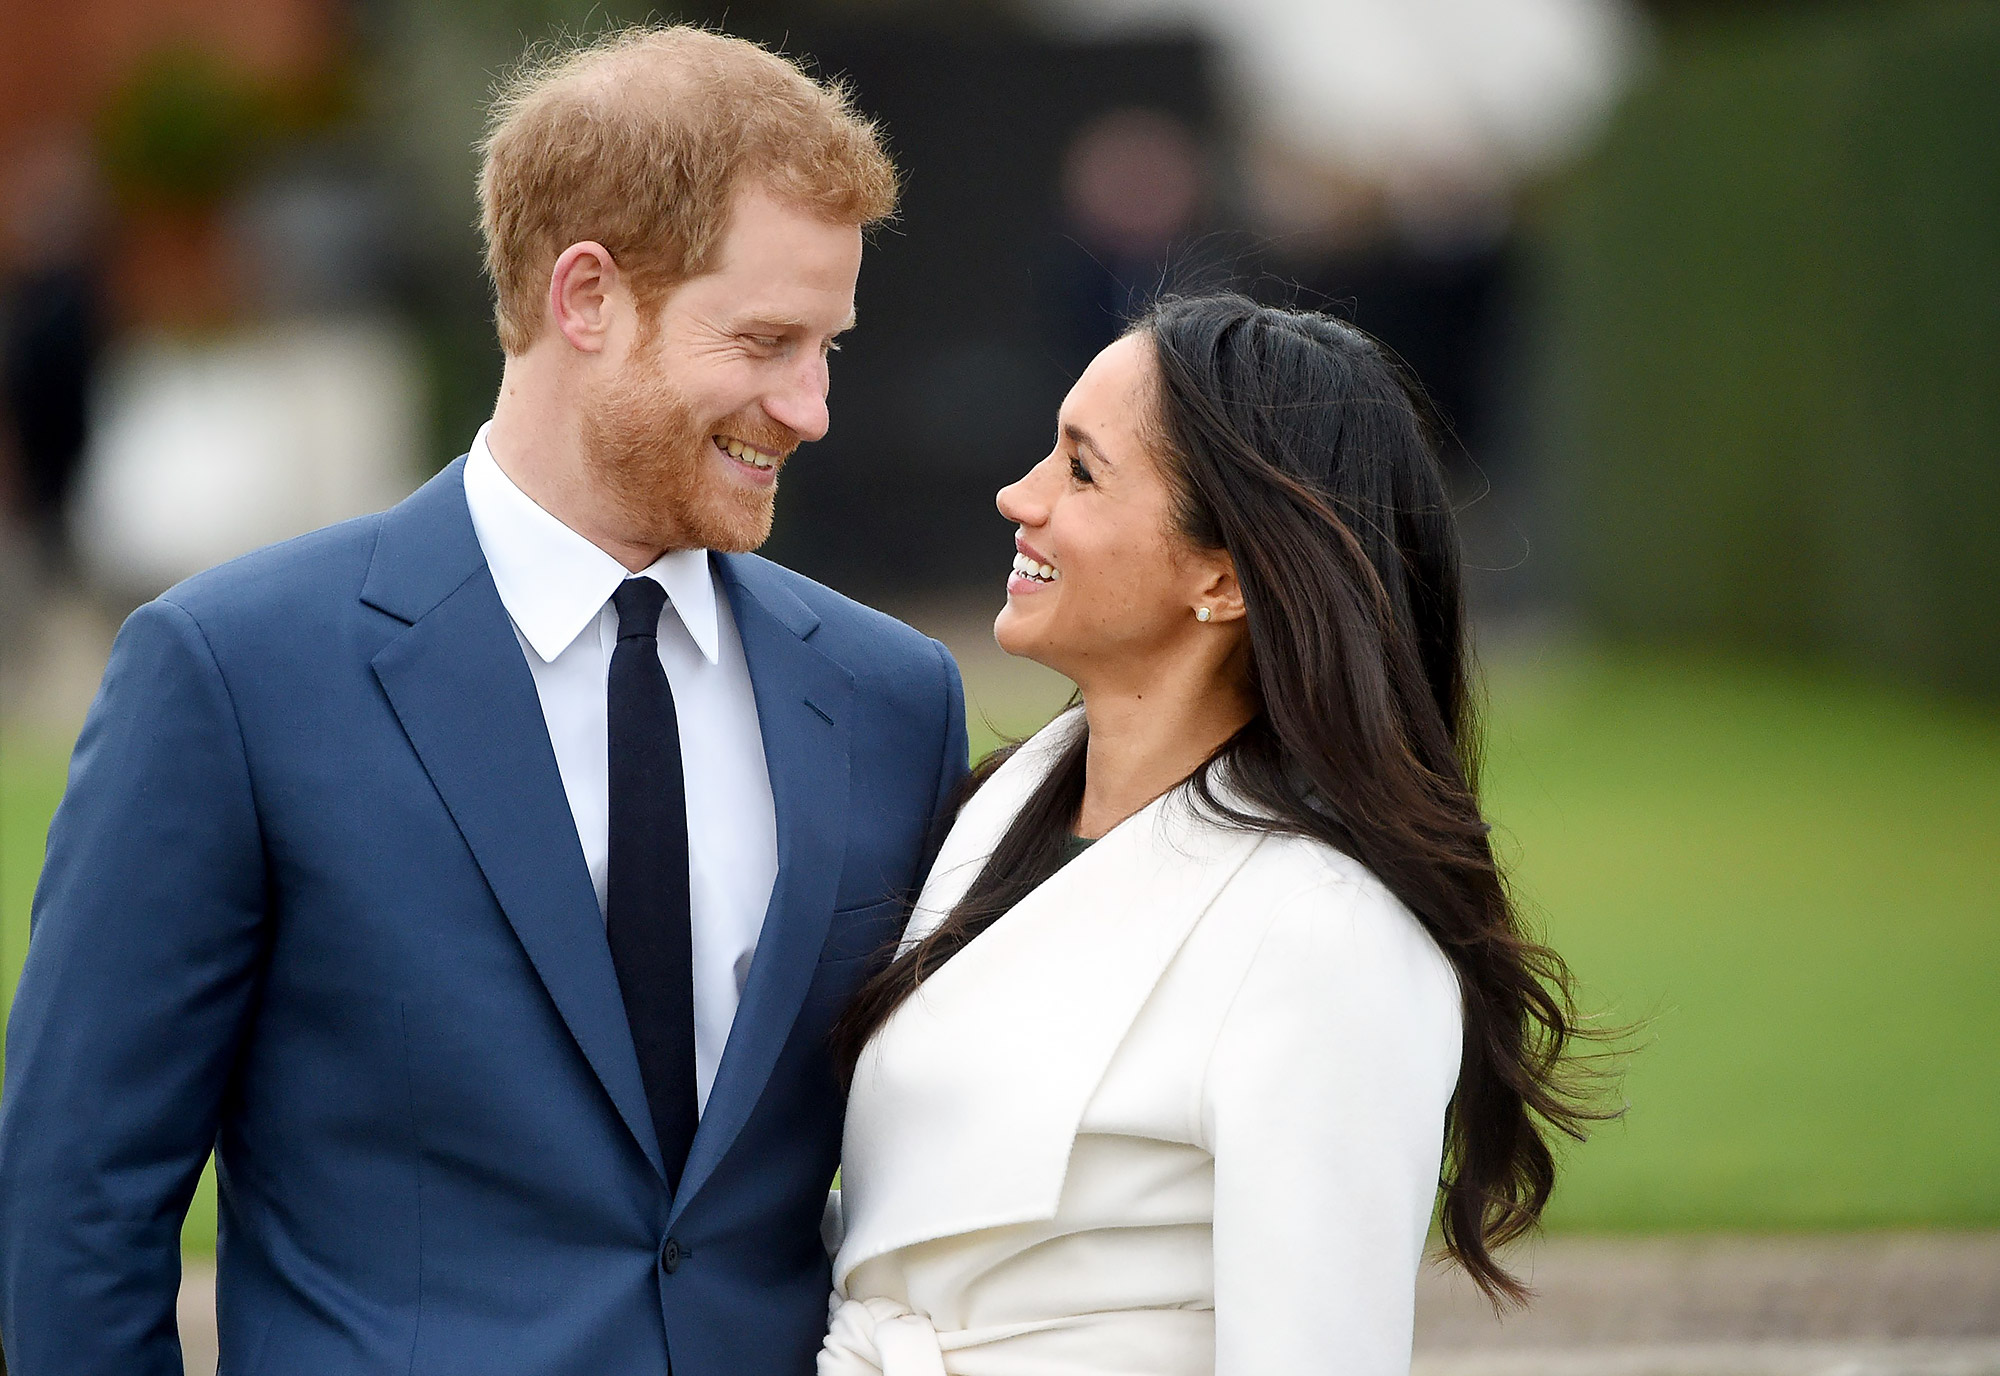 We Made Prince Harry and Meghan Markle's Royal Wedding Cake Based on Their Description